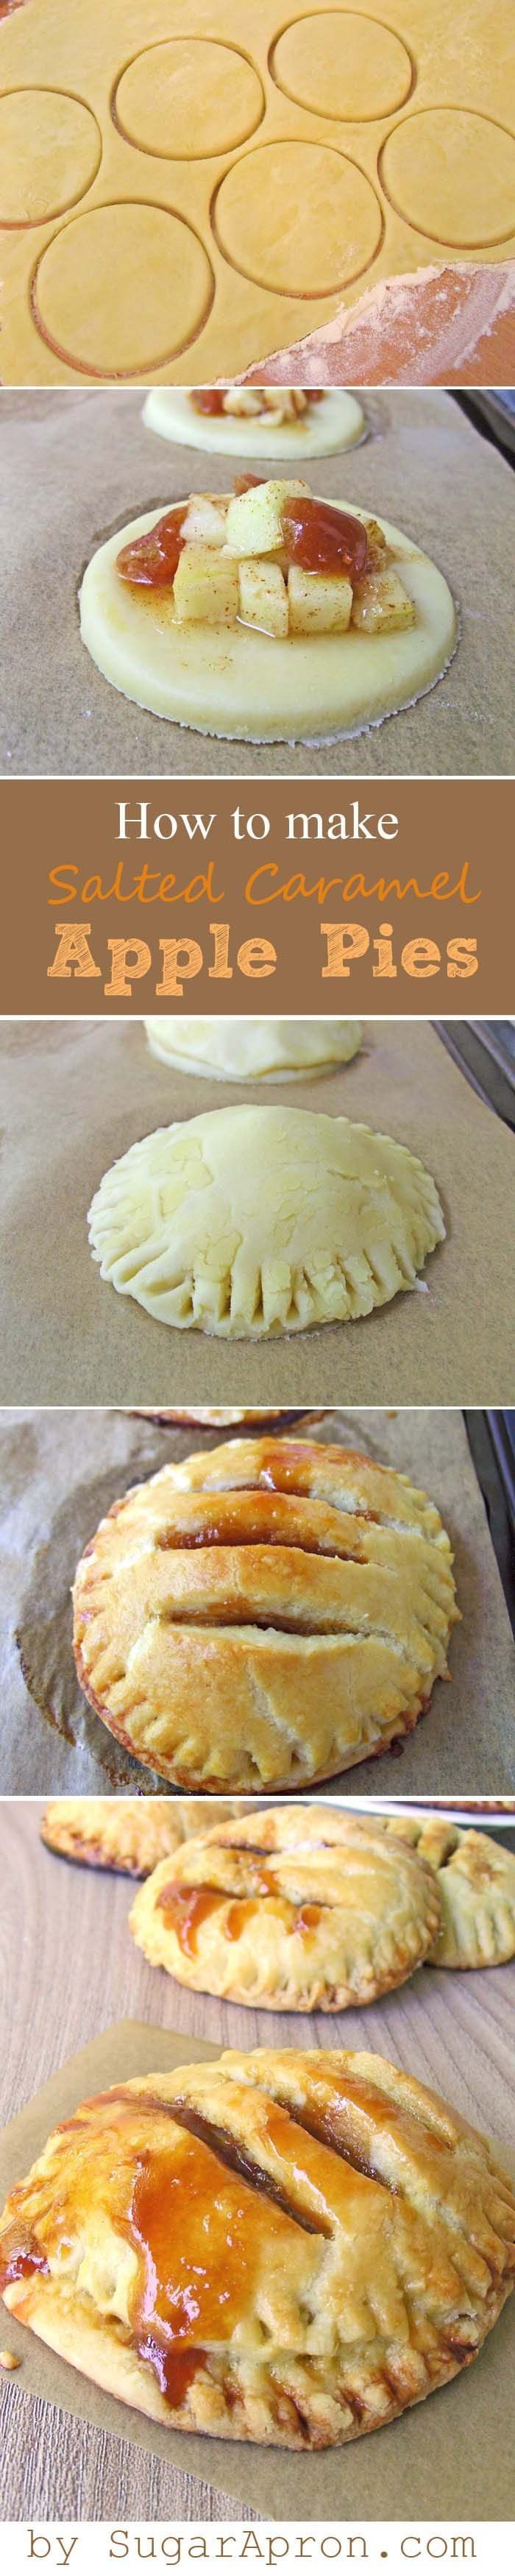 Individual Salted Caramel Apple Pies -- oh my! http://sugarapron.com/2014/07/15/individual-salted-caramel-apple-pies/#more-429